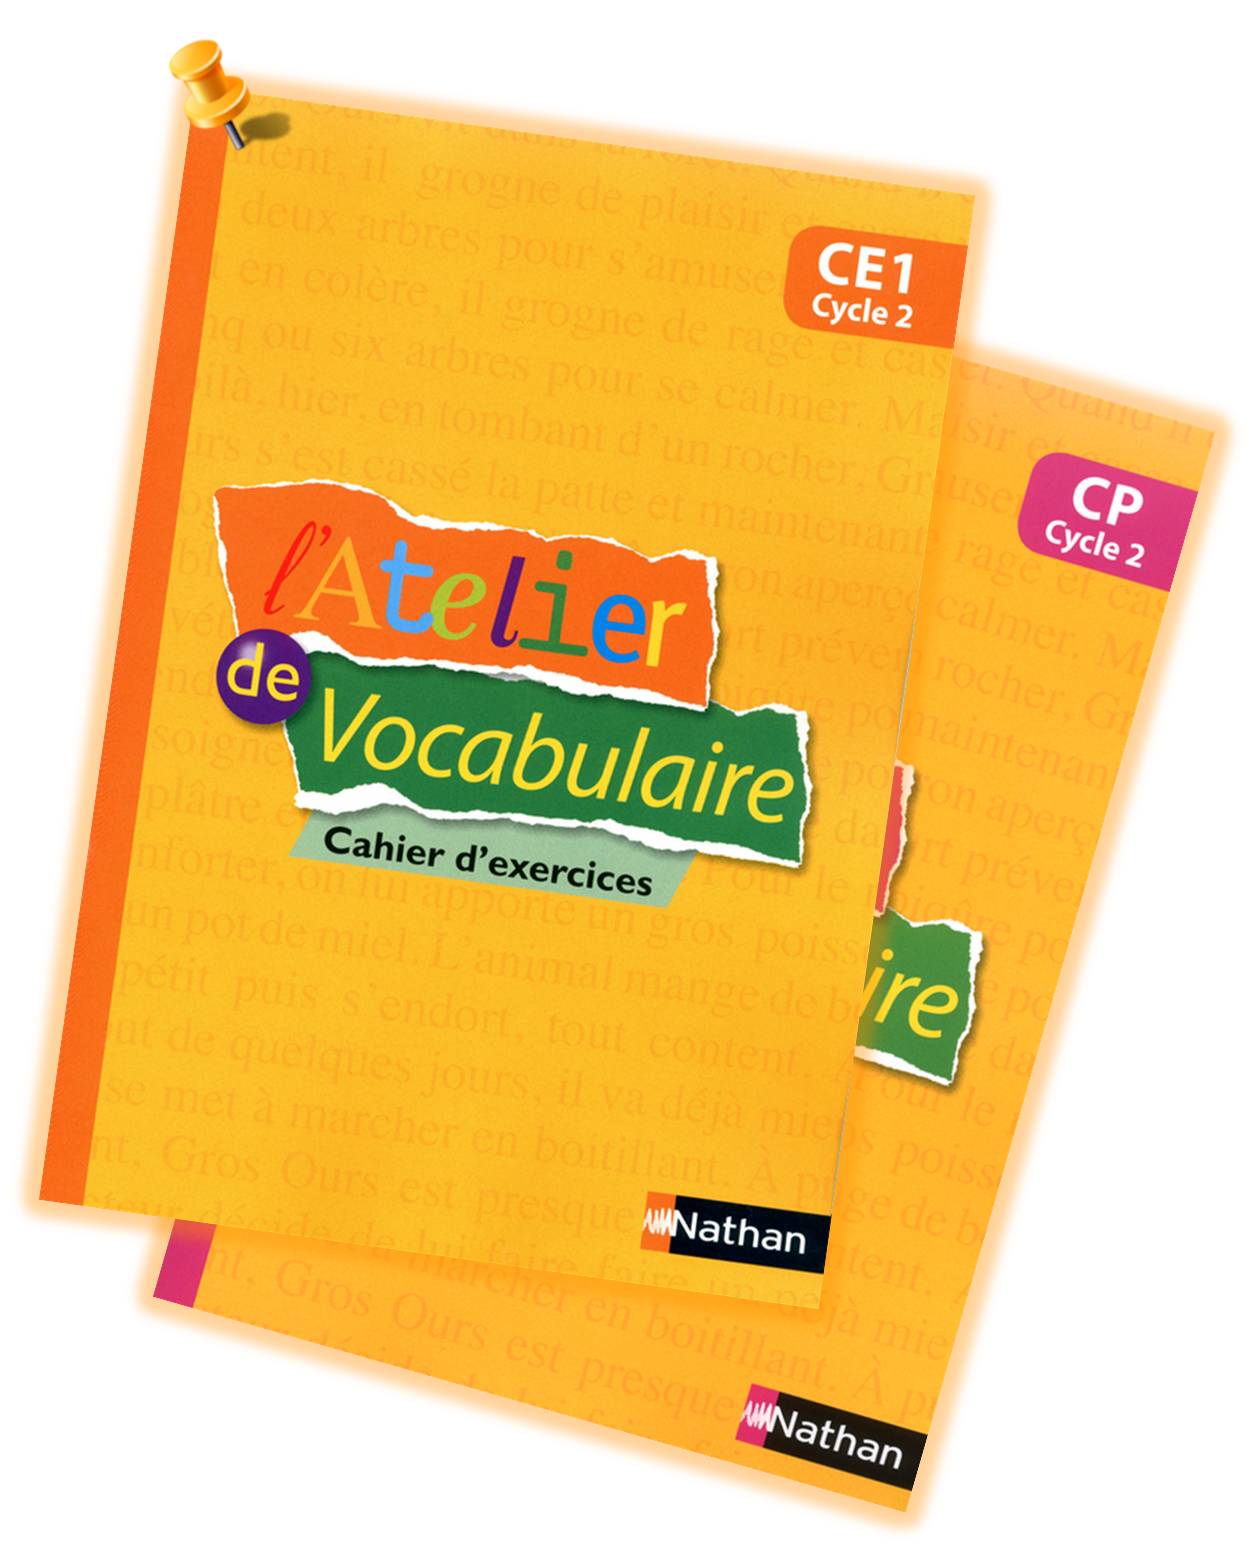 L'atelier de vocabulaire